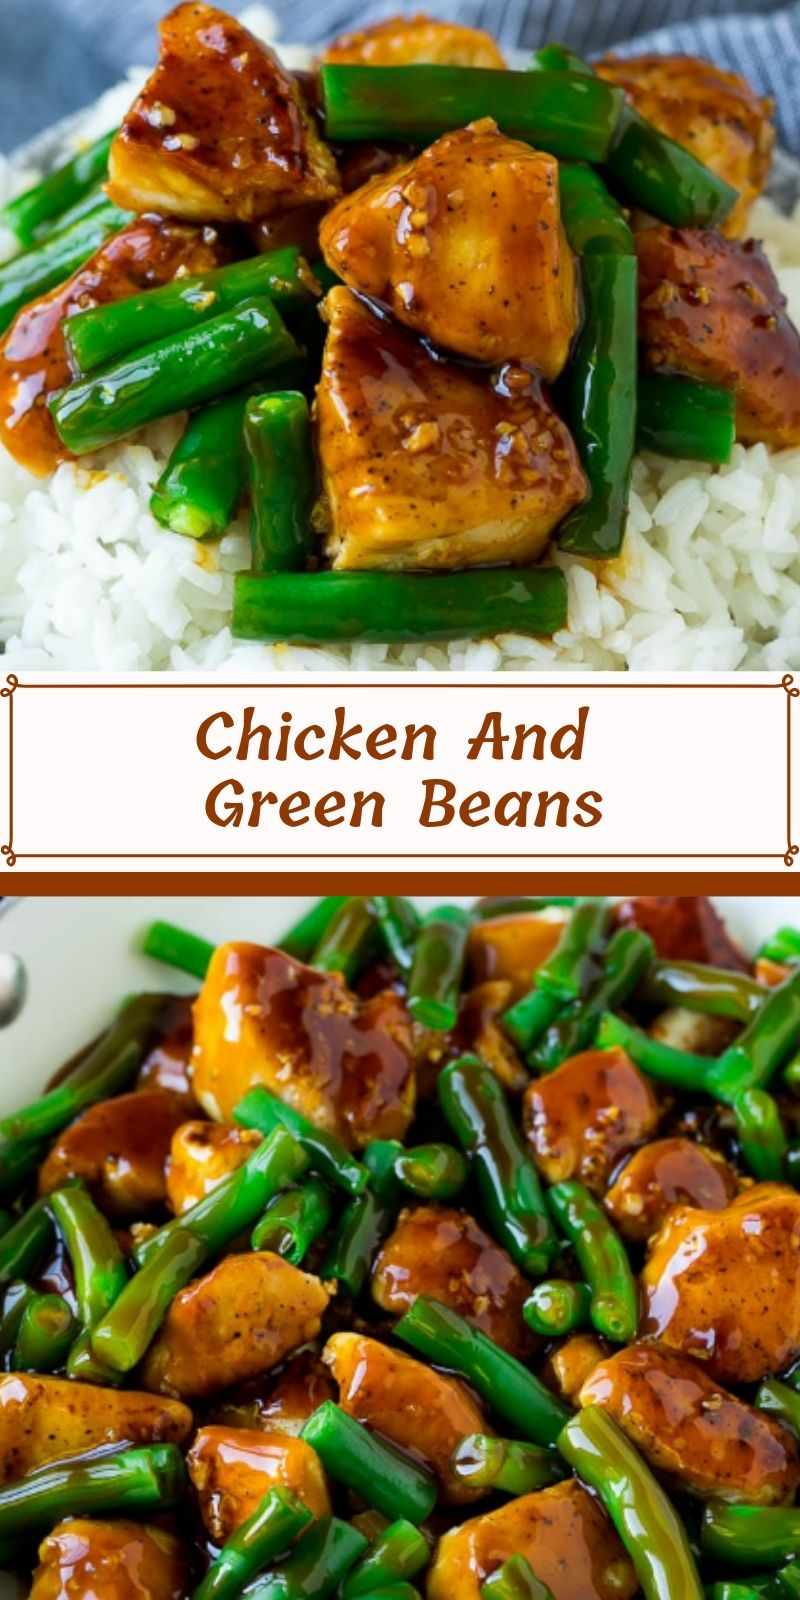 https://www.dinneratthezoo.com/chicken-and-green-beans/